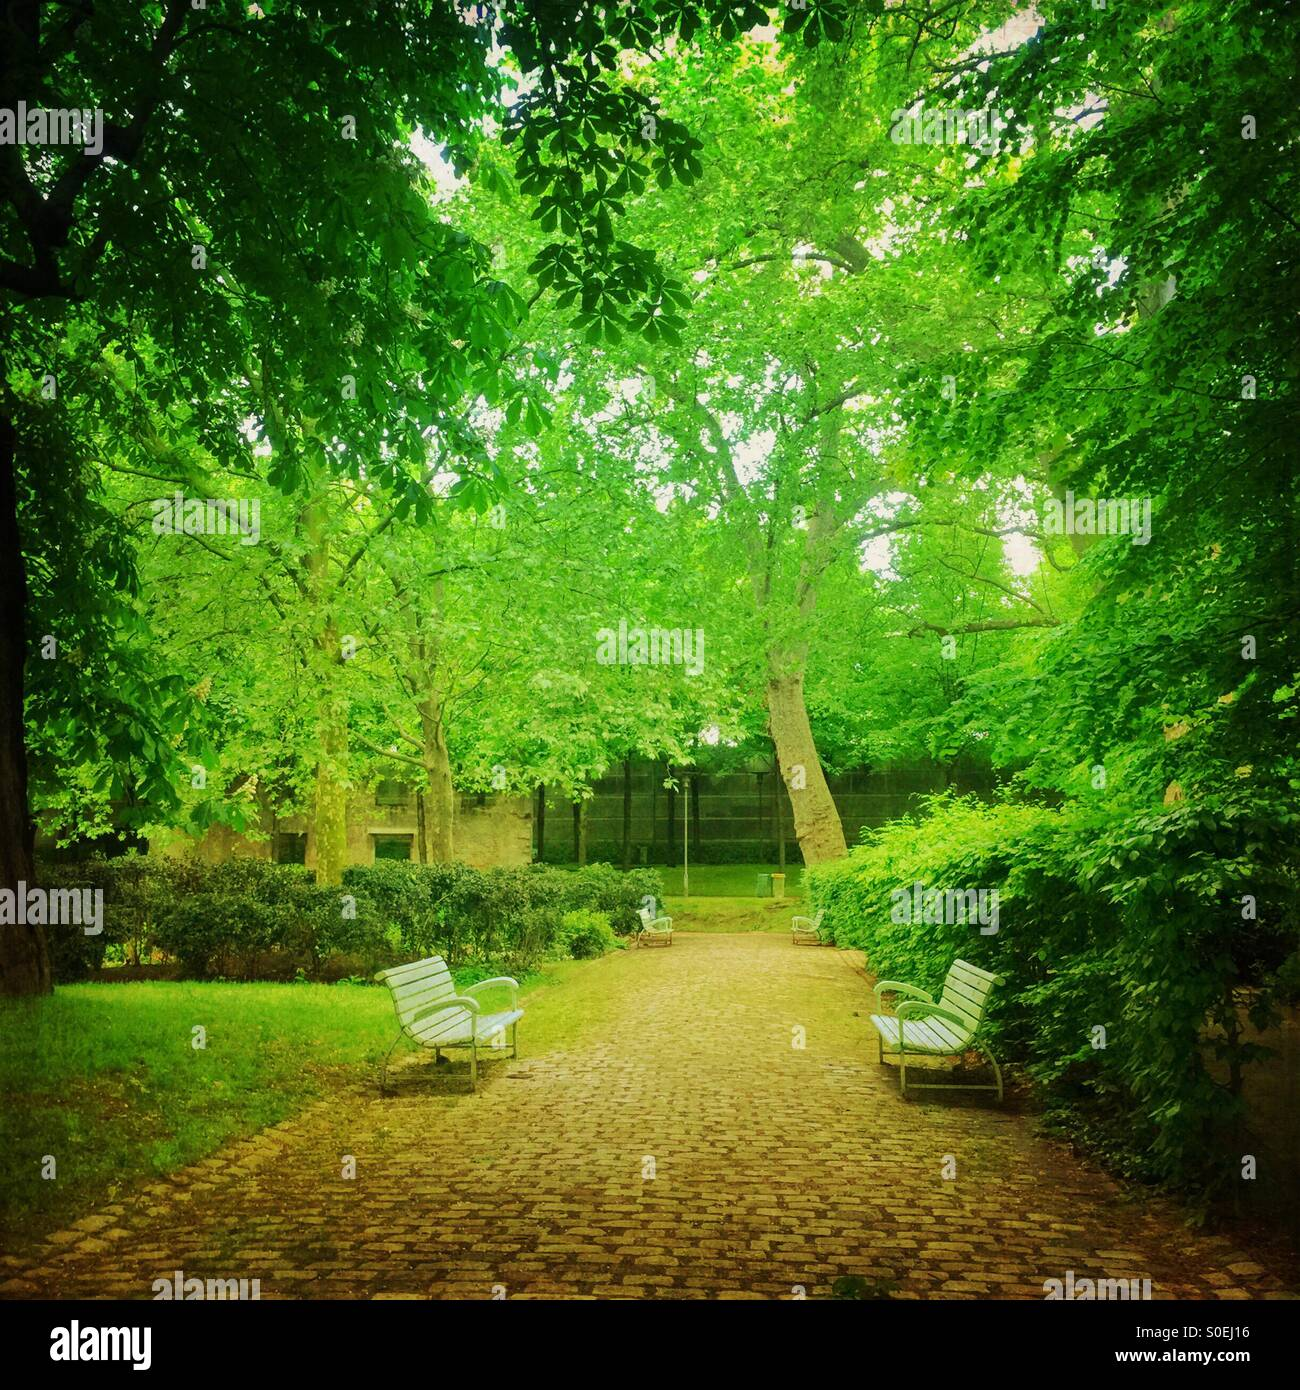 Verdant green Parc de Bercy with stone pavement, benches, trees and fresh Spring foliage in Paris, France. VintageStock Photo